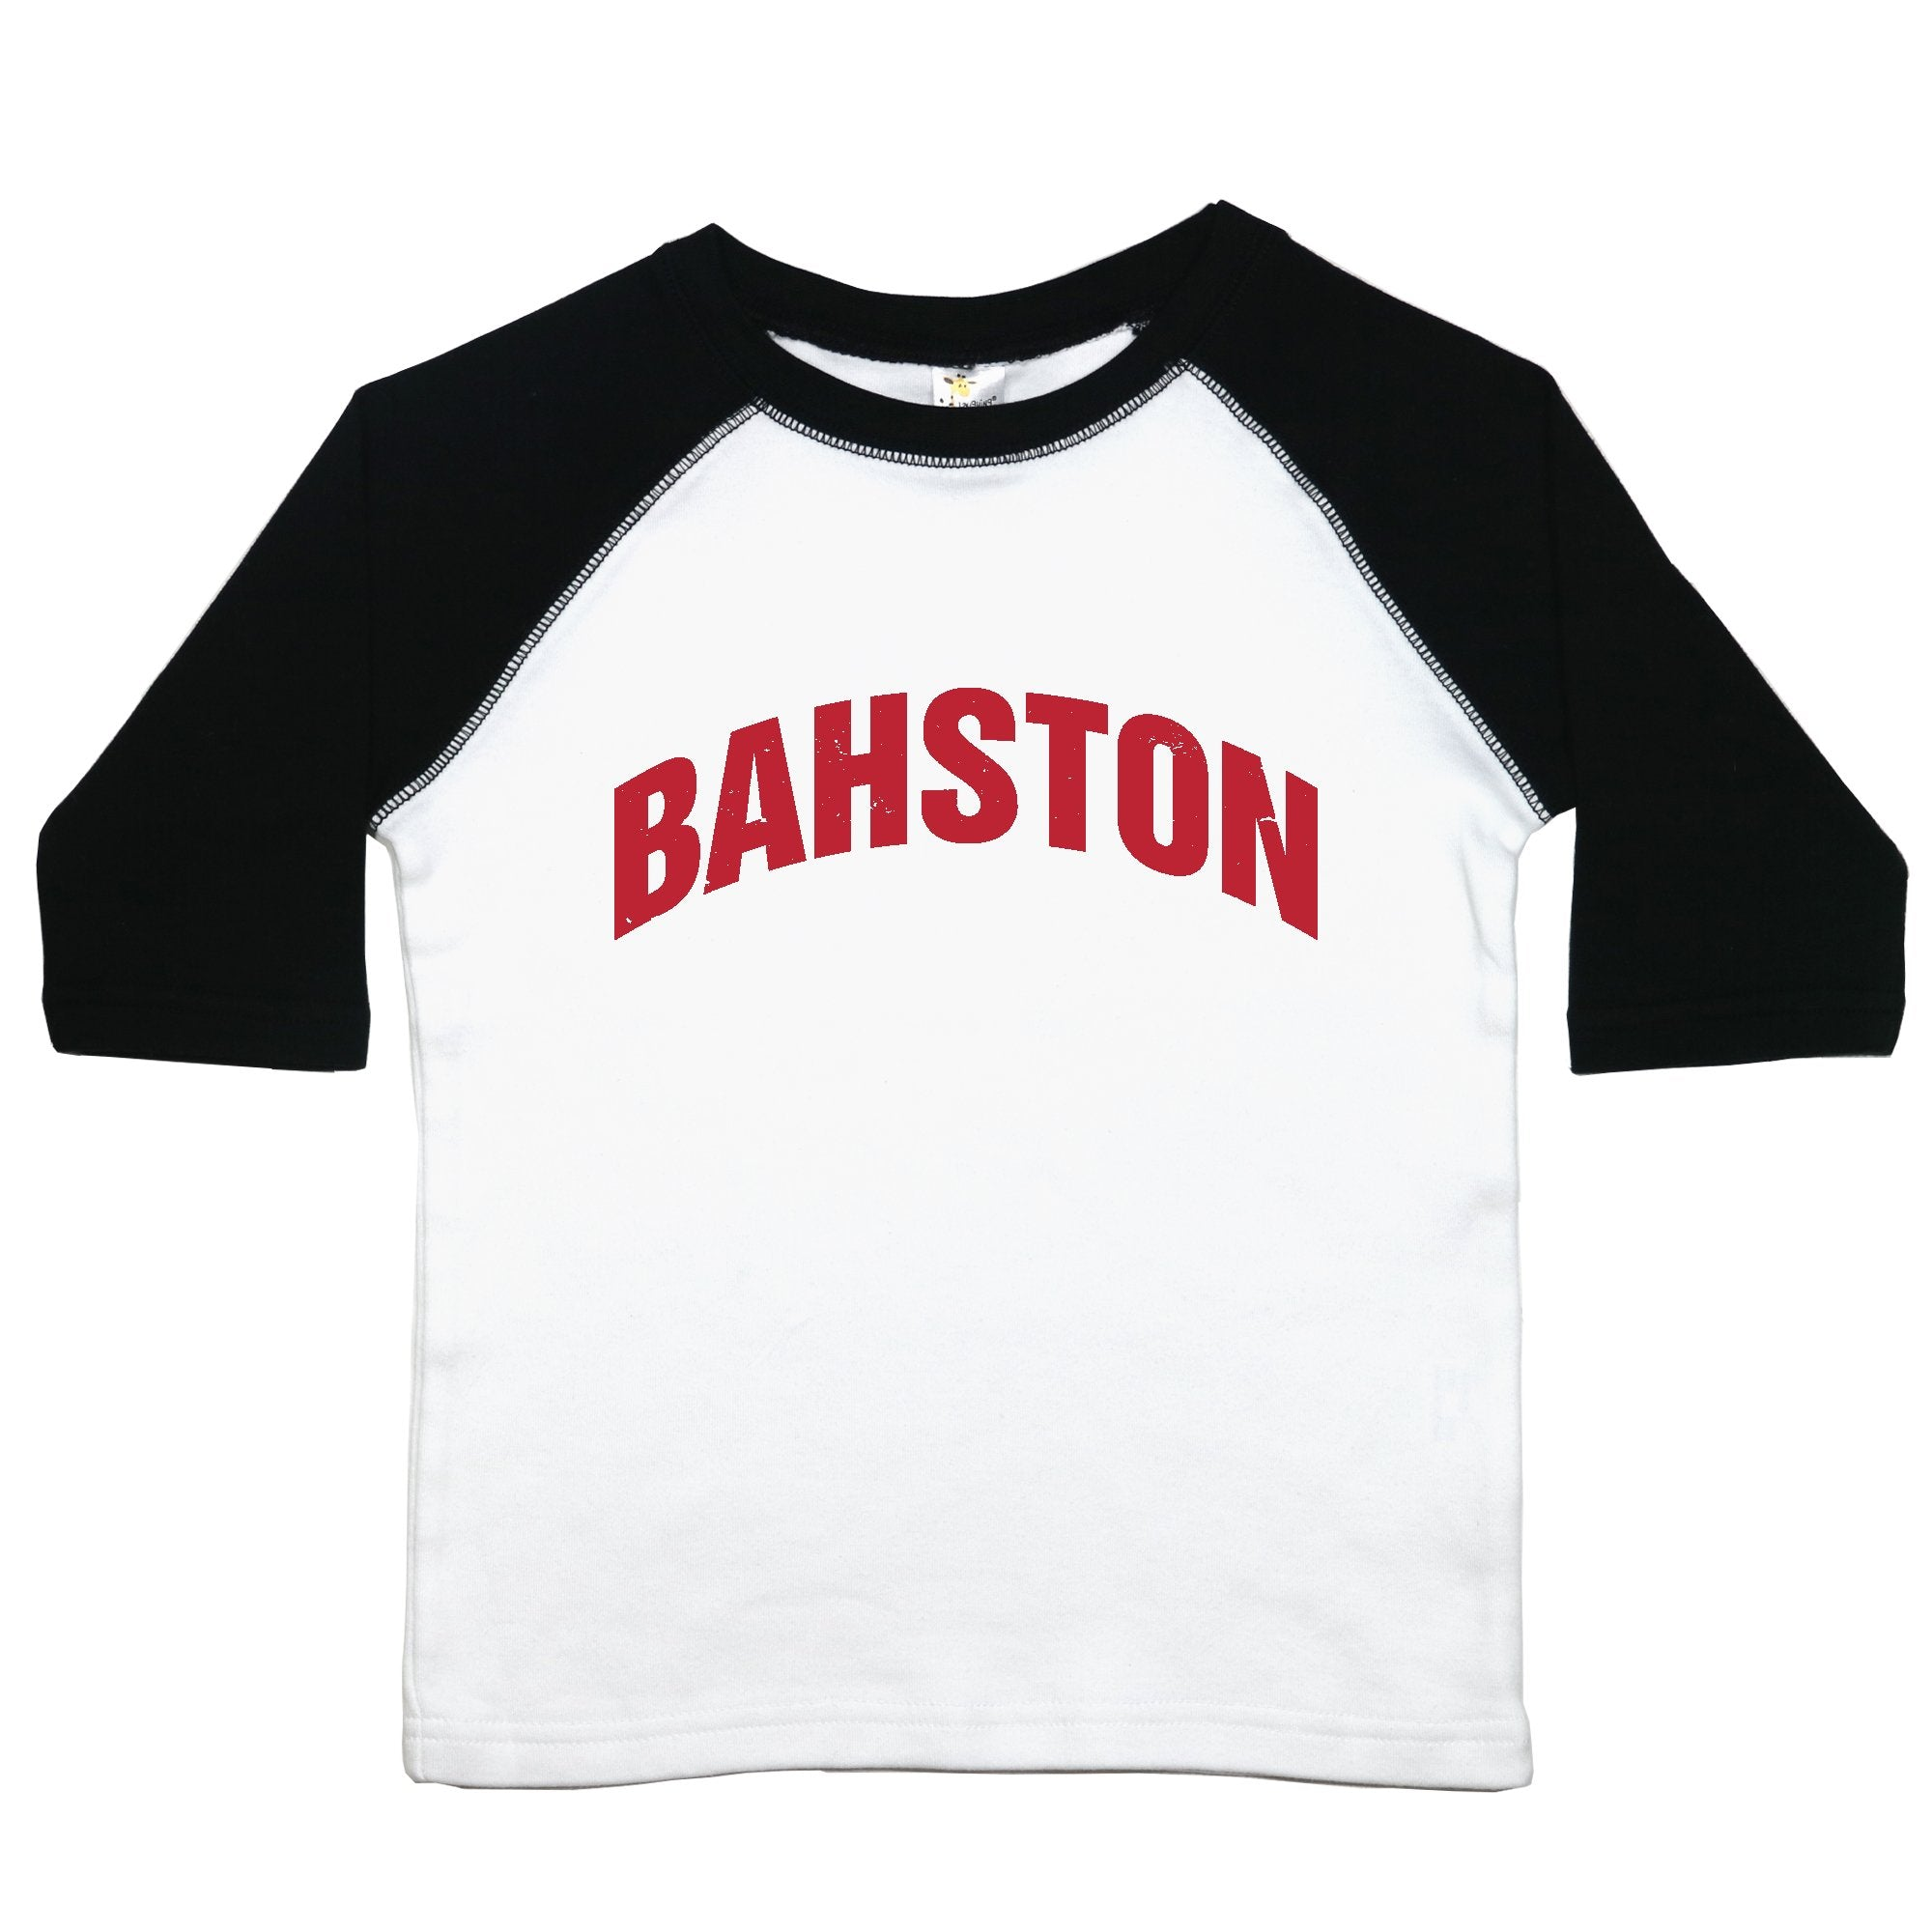 "a toddler tee with the text ""bahston"""